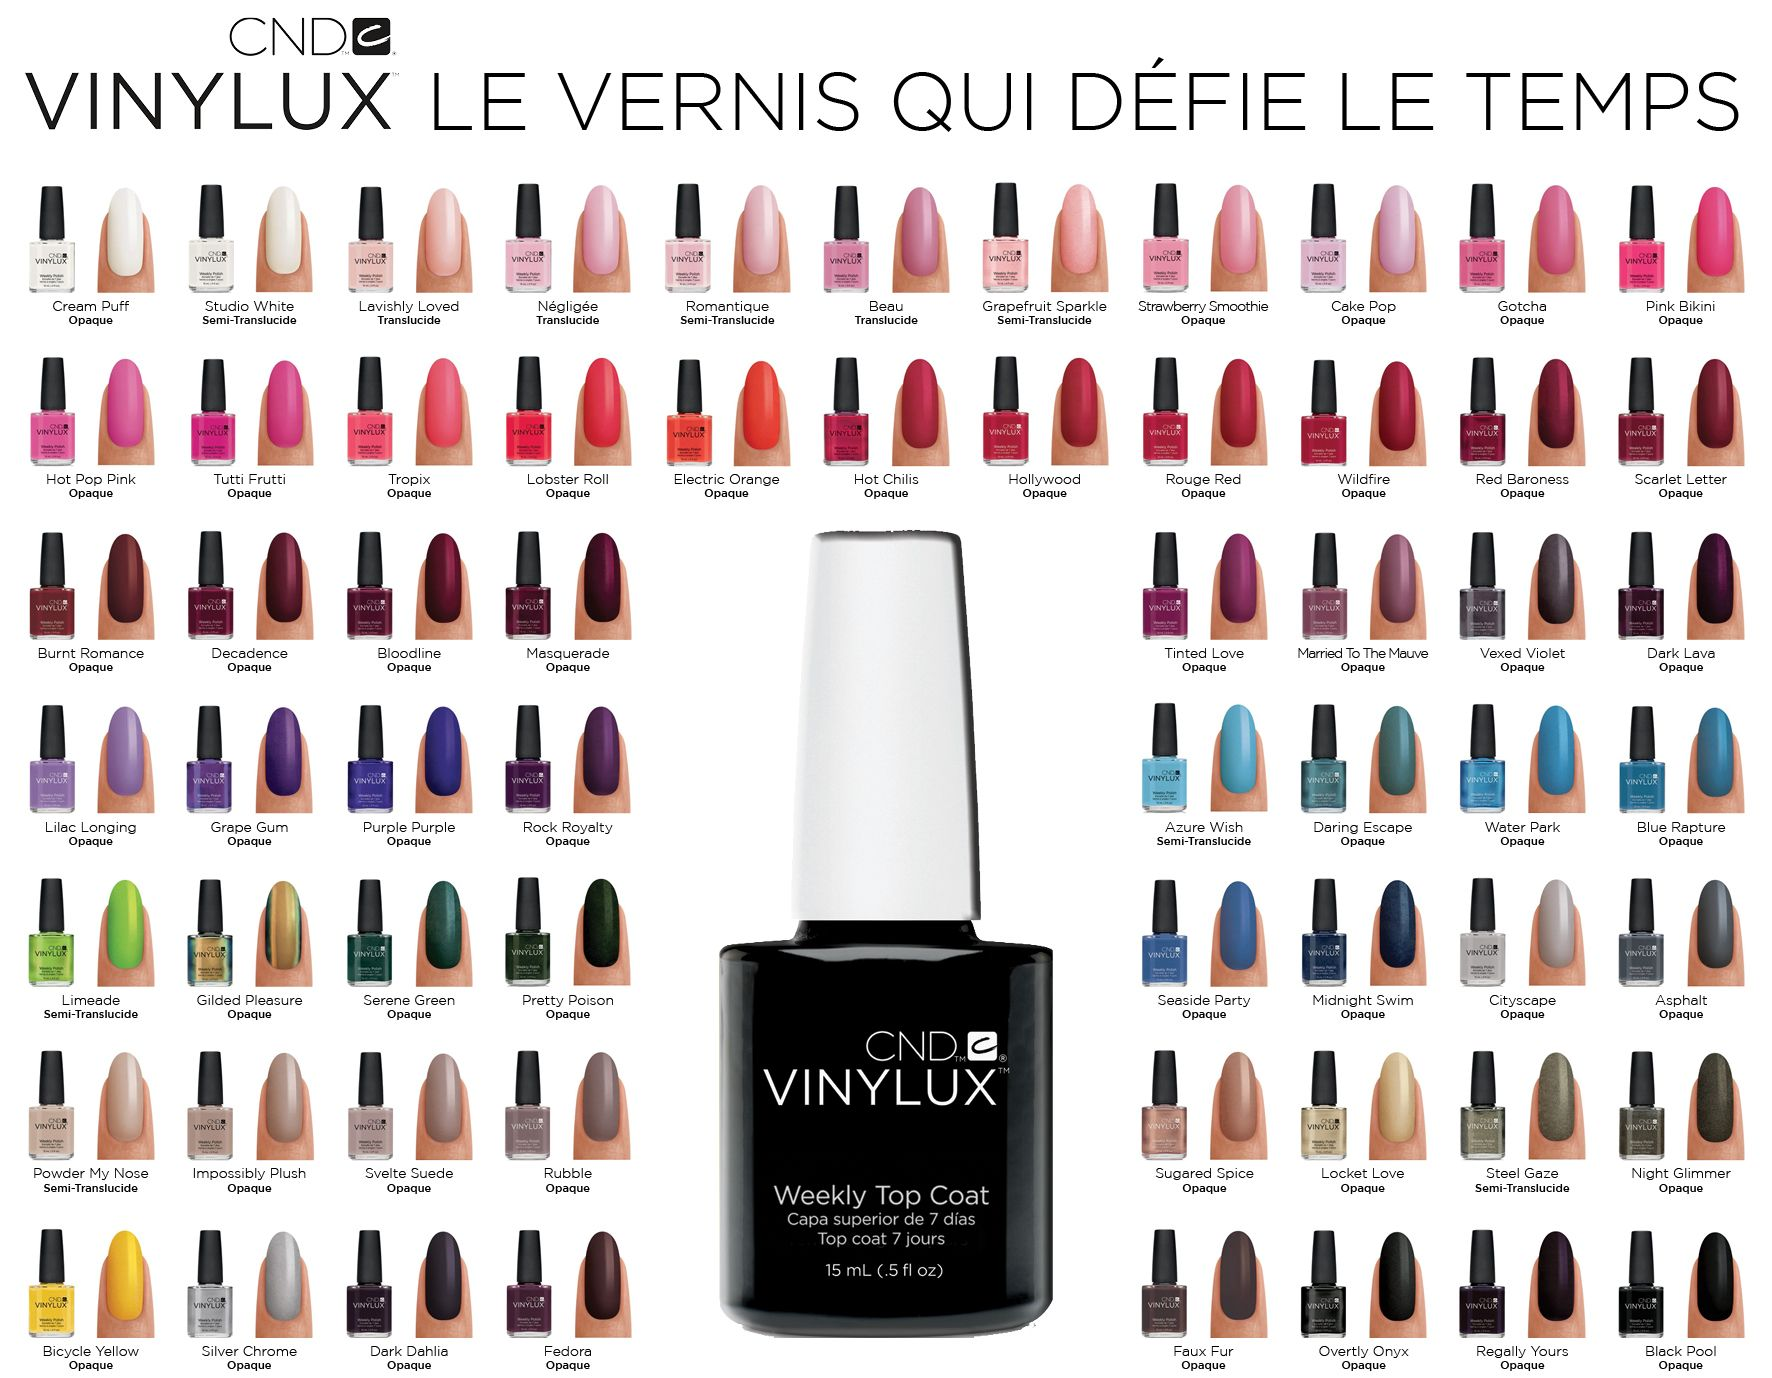 CND VINYLUX now available at Skin Care Institute. It lasts 7 days without chipping! Call to schedule your manicure today.